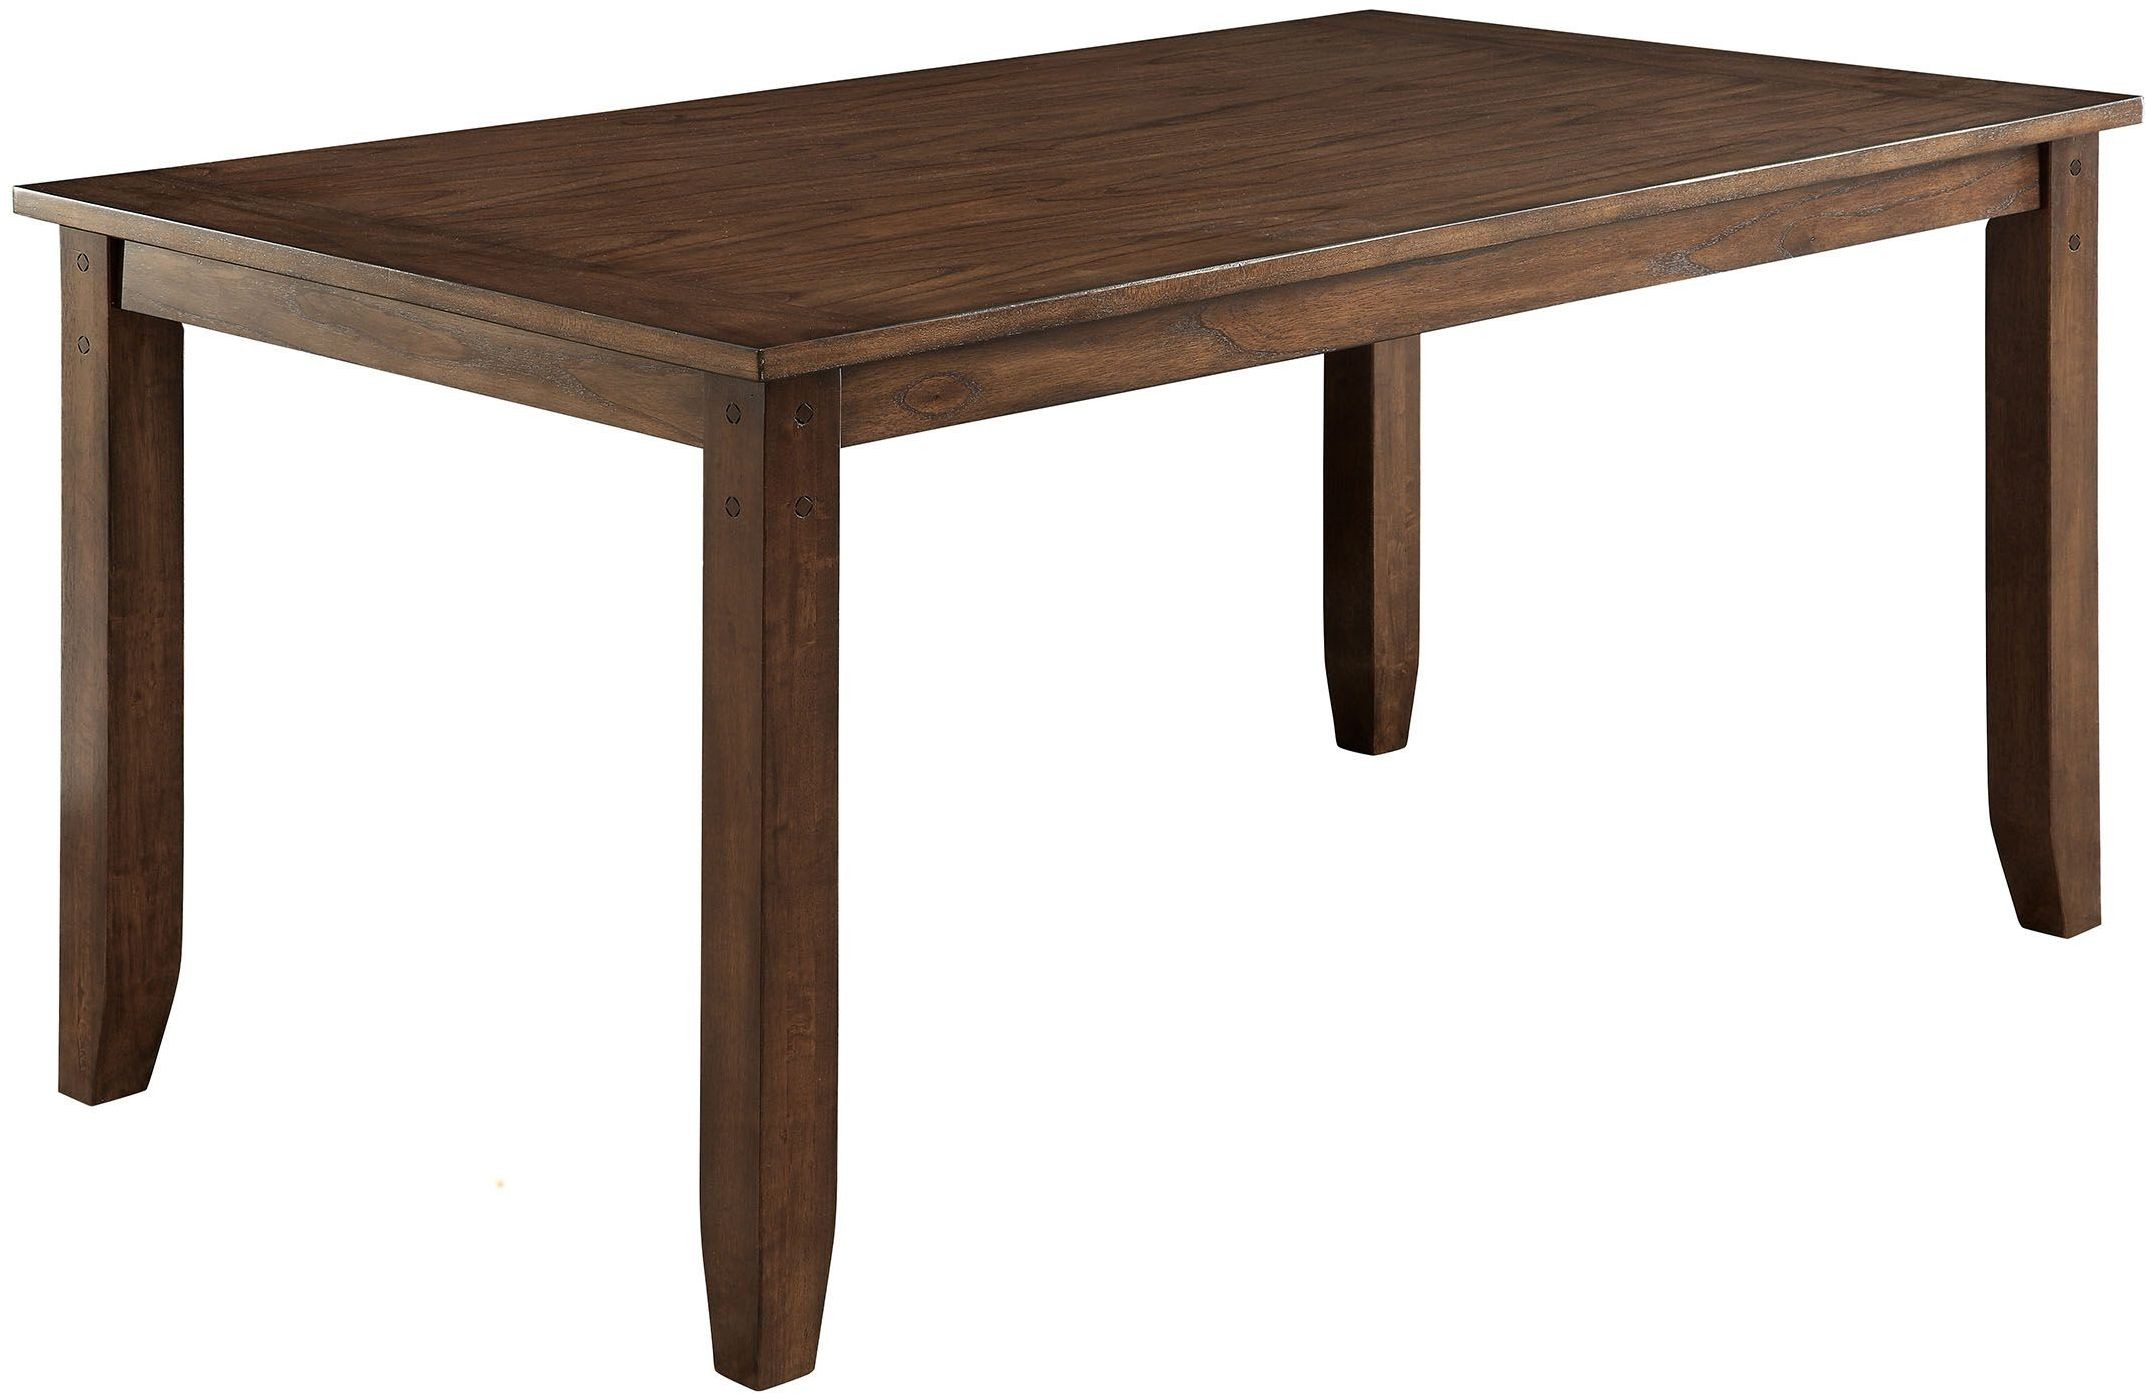 Brockton I Rustic Oak Rectangular Dining Table CM3355T  : cm3355t wb from colemanfurniture.com size 2146 x 1394 jpeg 253kB